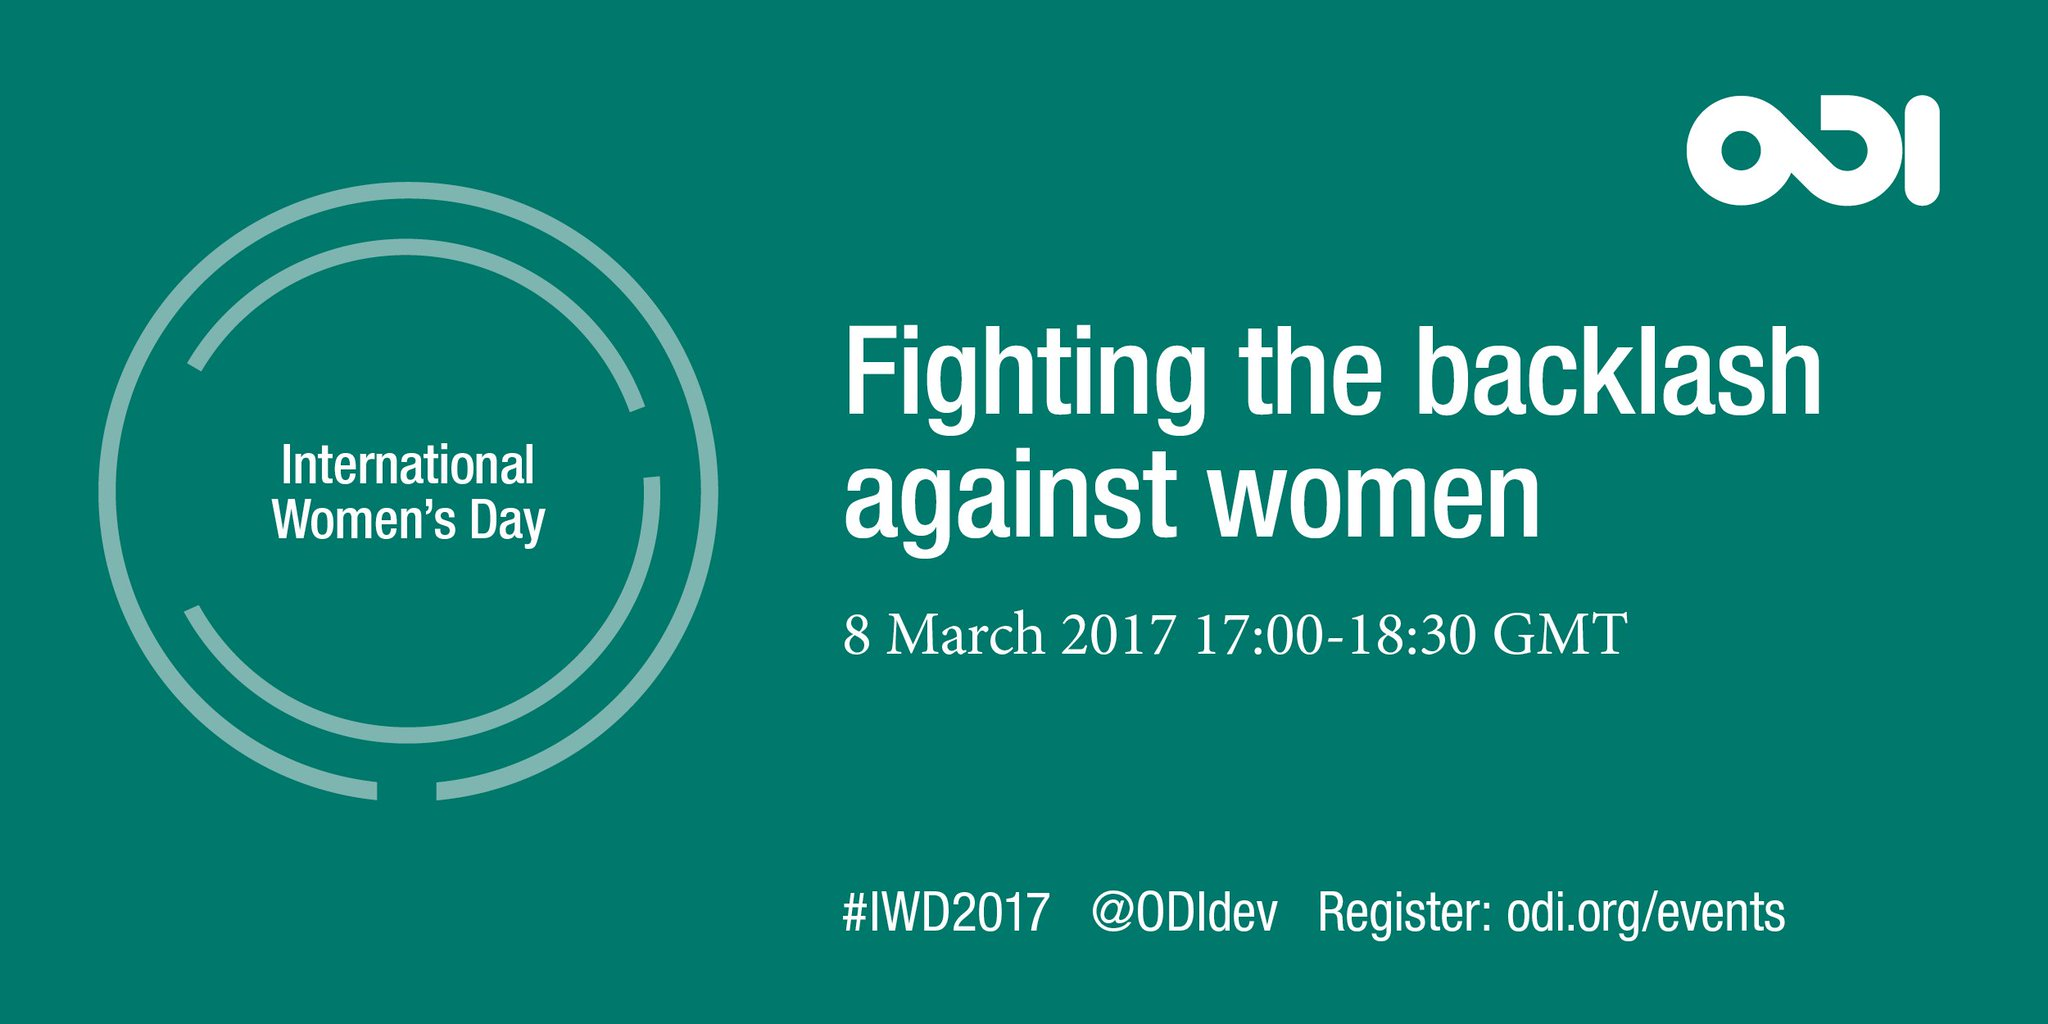 Later today we ask feminists from around the world how to fight the growing backlash against women. Watch here: https://t.co/R04uuFUNhr #IWD https://t.co/uP1fPIeROa